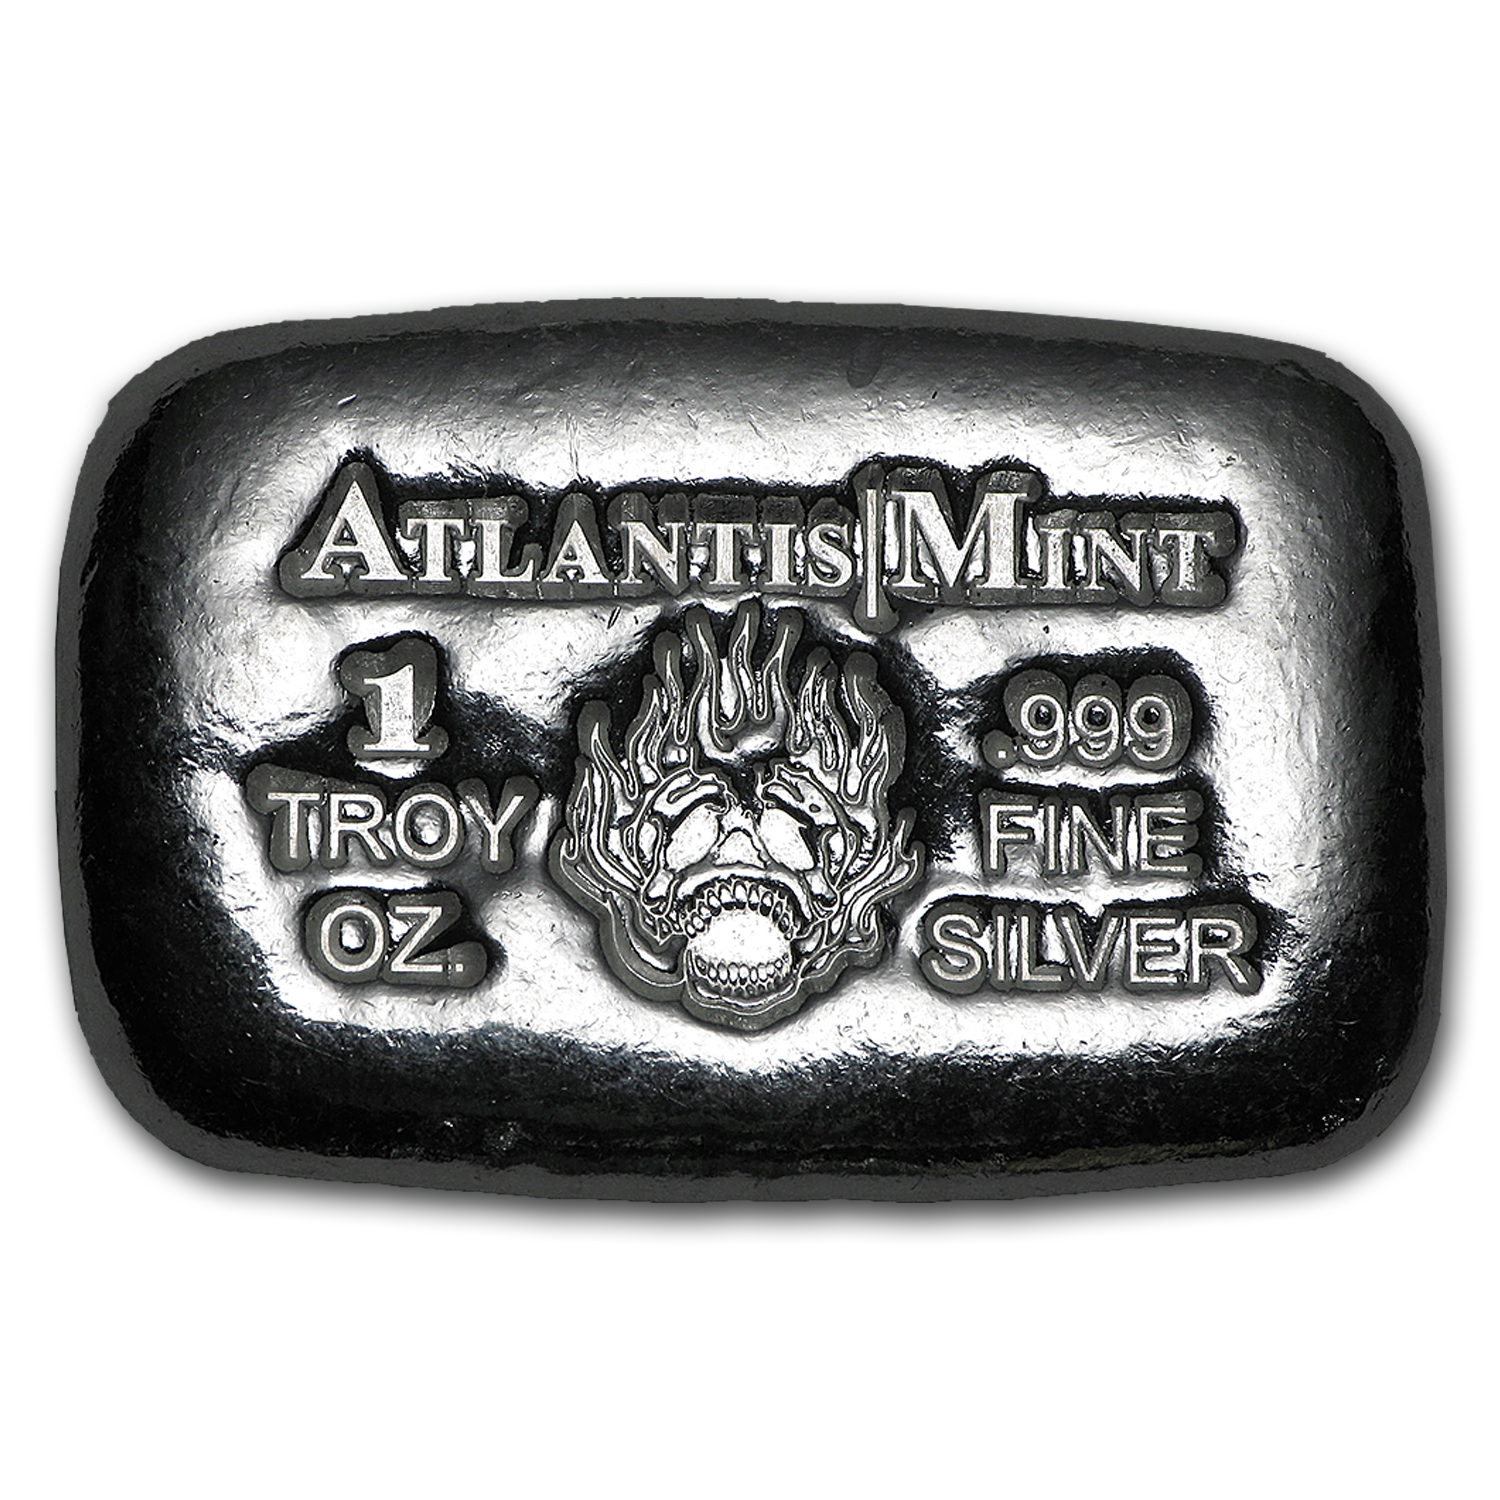 1 oz Silver Bar - Atlantis Mint (Skull & Flames)